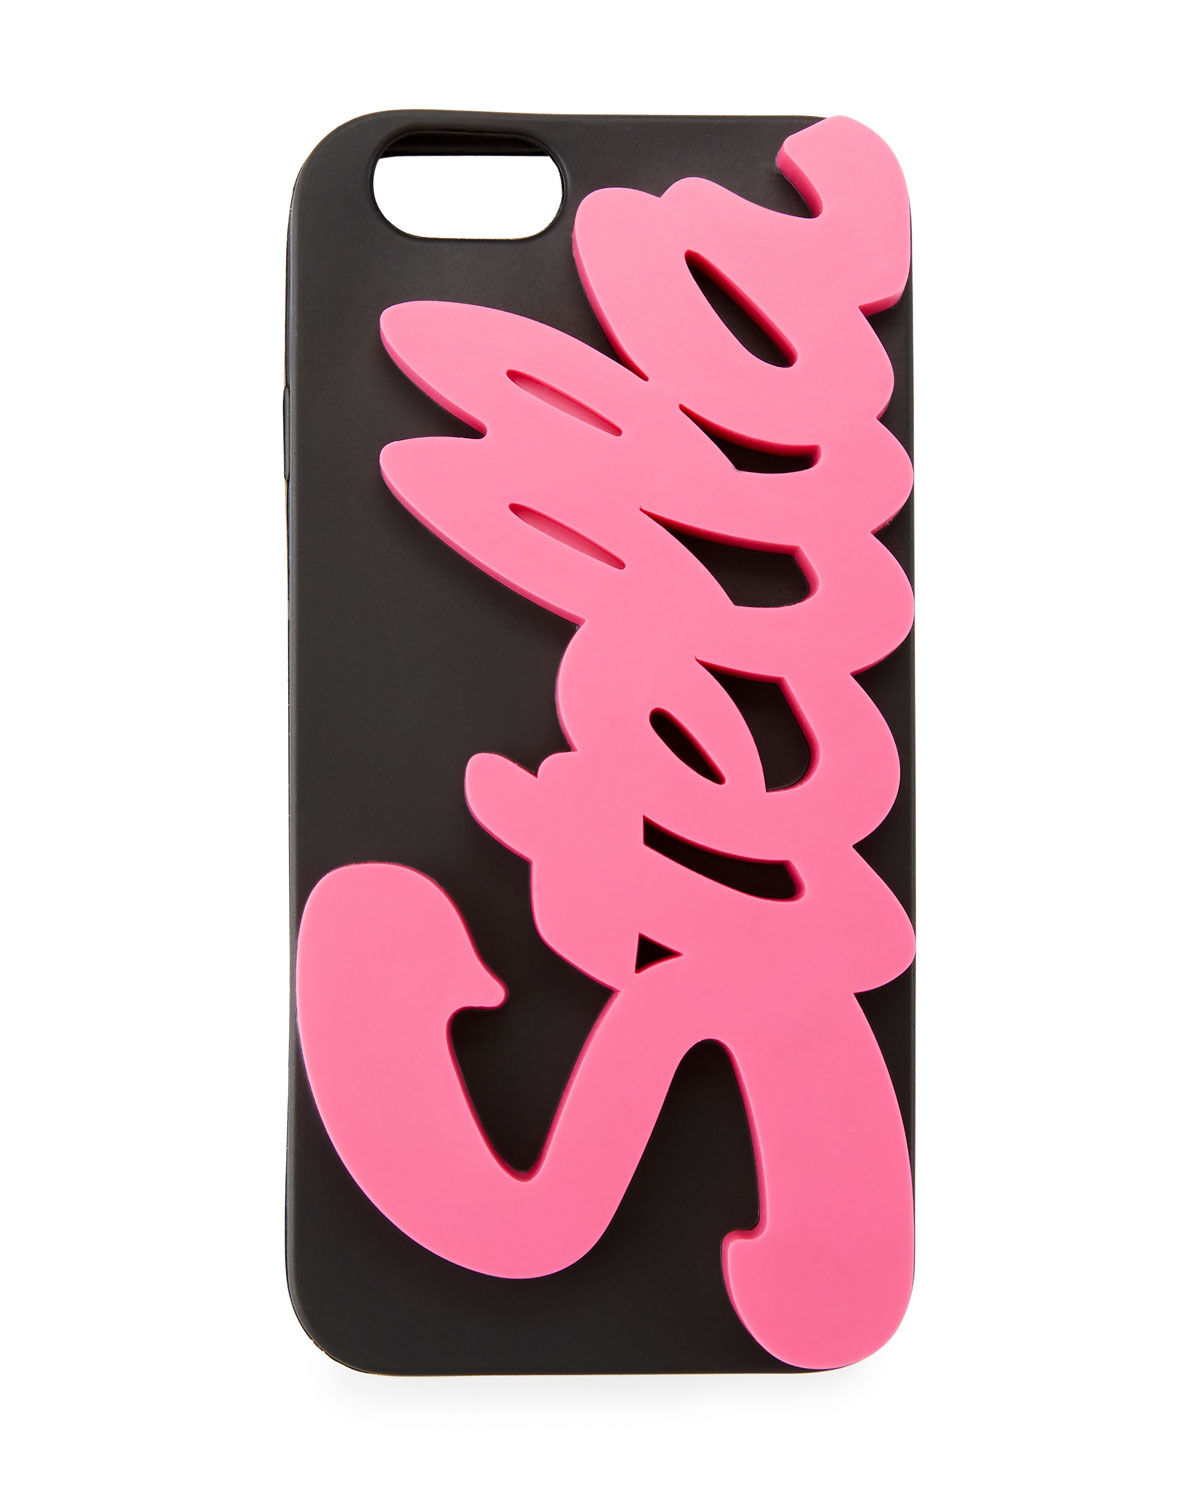 Stella iPhone 6 Case